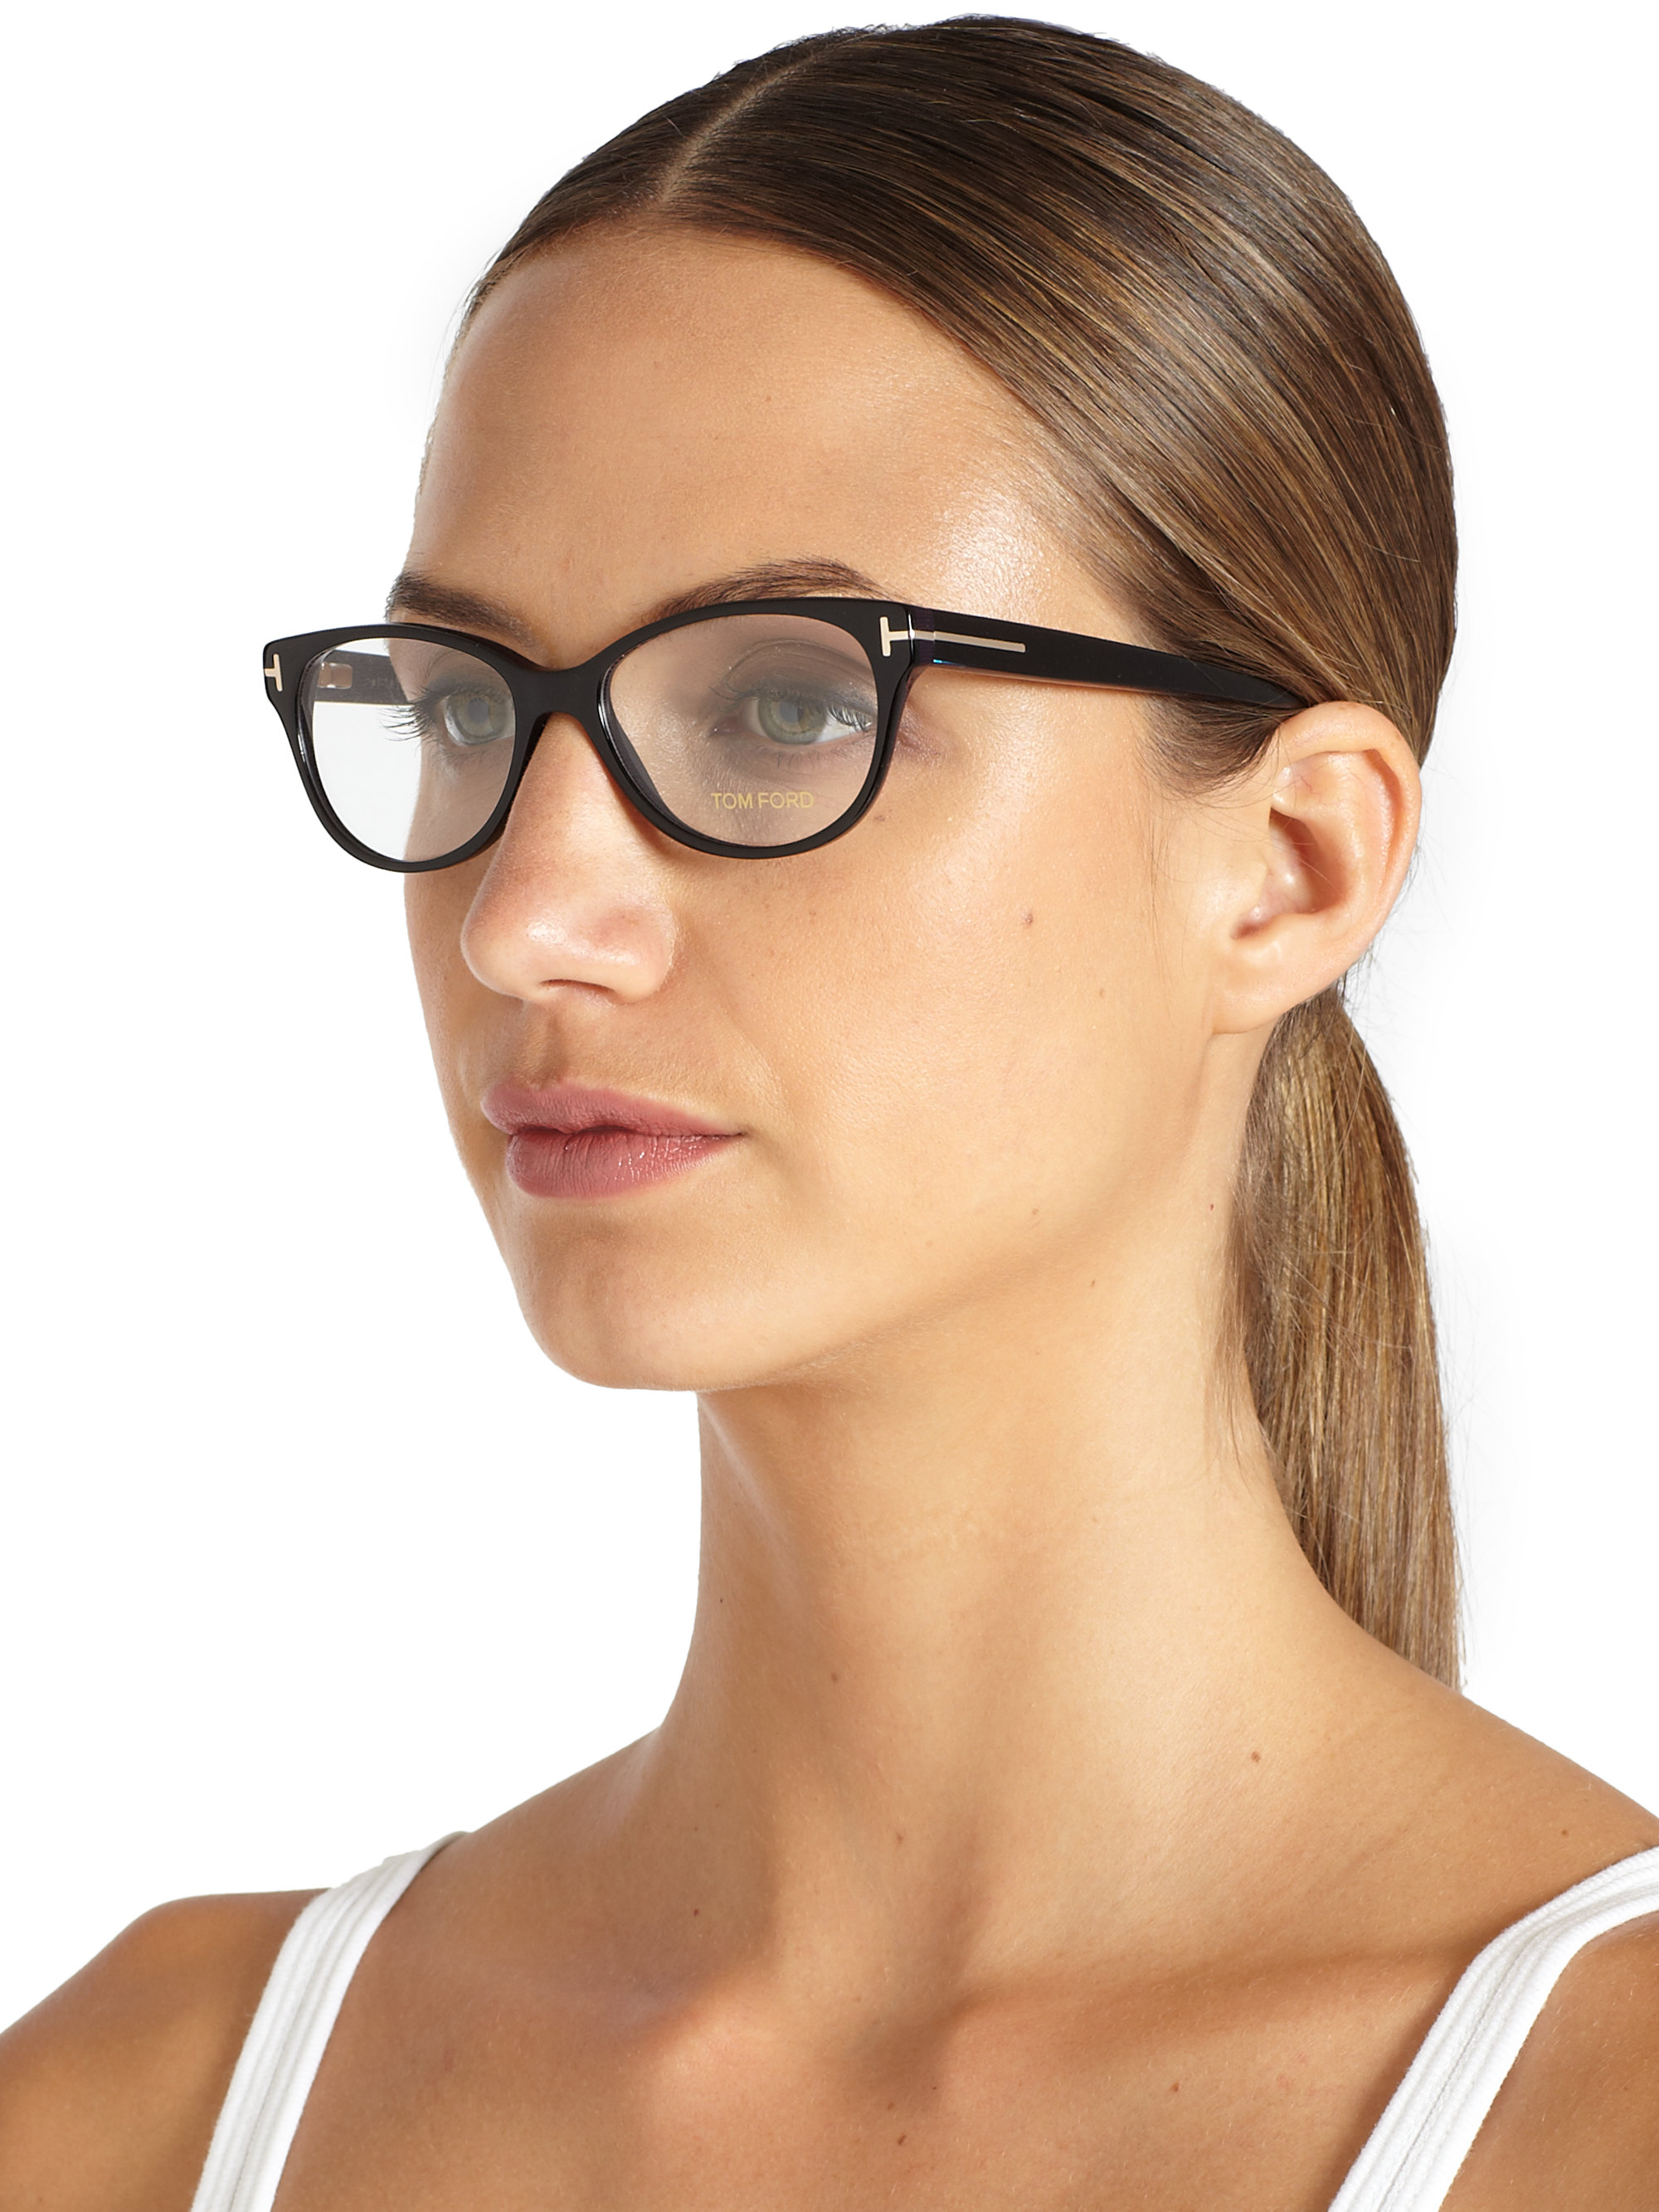 tom ford eyewear black cats eye optical glasses product 1 25536630 1. Cars Review. Best American Auto & Cars Review